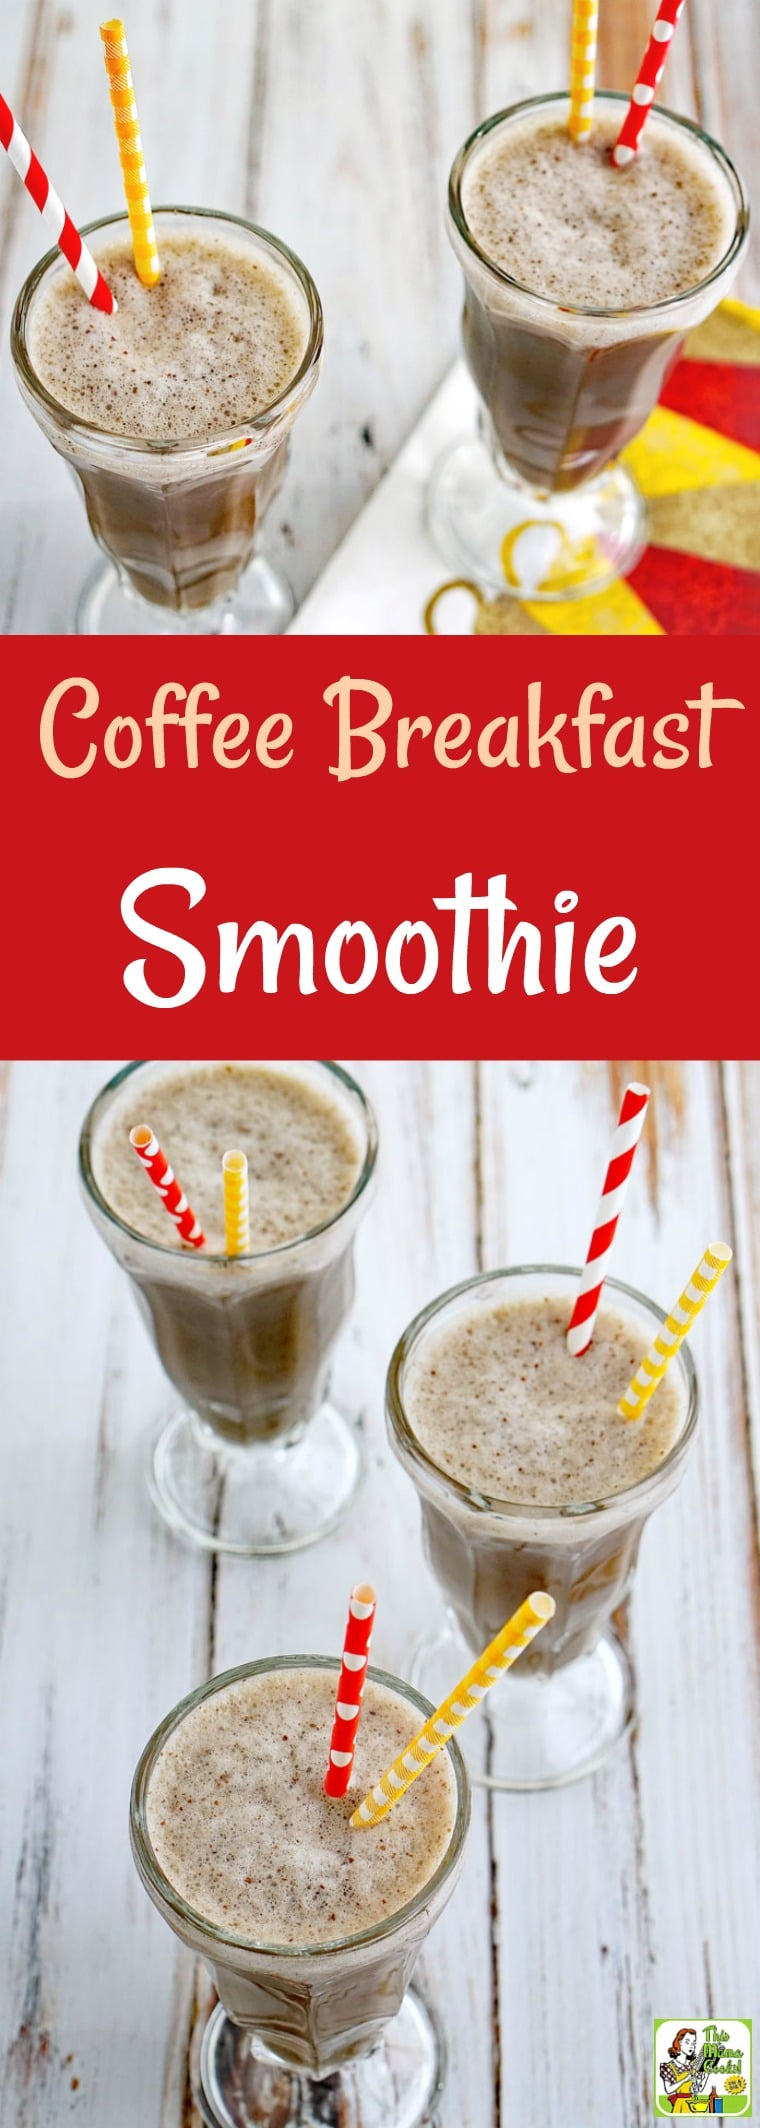 Try this Coffee Breakfast Smoothie recipe as an easy way to start your day with a boost of chocolate flavored coffee, almond milk, and cherries! This easy and dairy free coffee smoothie recipe makes a healthy afternoon snack or post-workout drink. #coffee #shakes #drink #smoothies #smoothiesrecipes #dairyfree #almondmilk #cherries #healthydrinks #healthydrinksrecipe #lowcalorie #breakfast #icedcoffee #recipe #easy #recipeoftheday #healthyrecipes #glutenfree #easyrecipes #snacks #lowcaloriesnacks